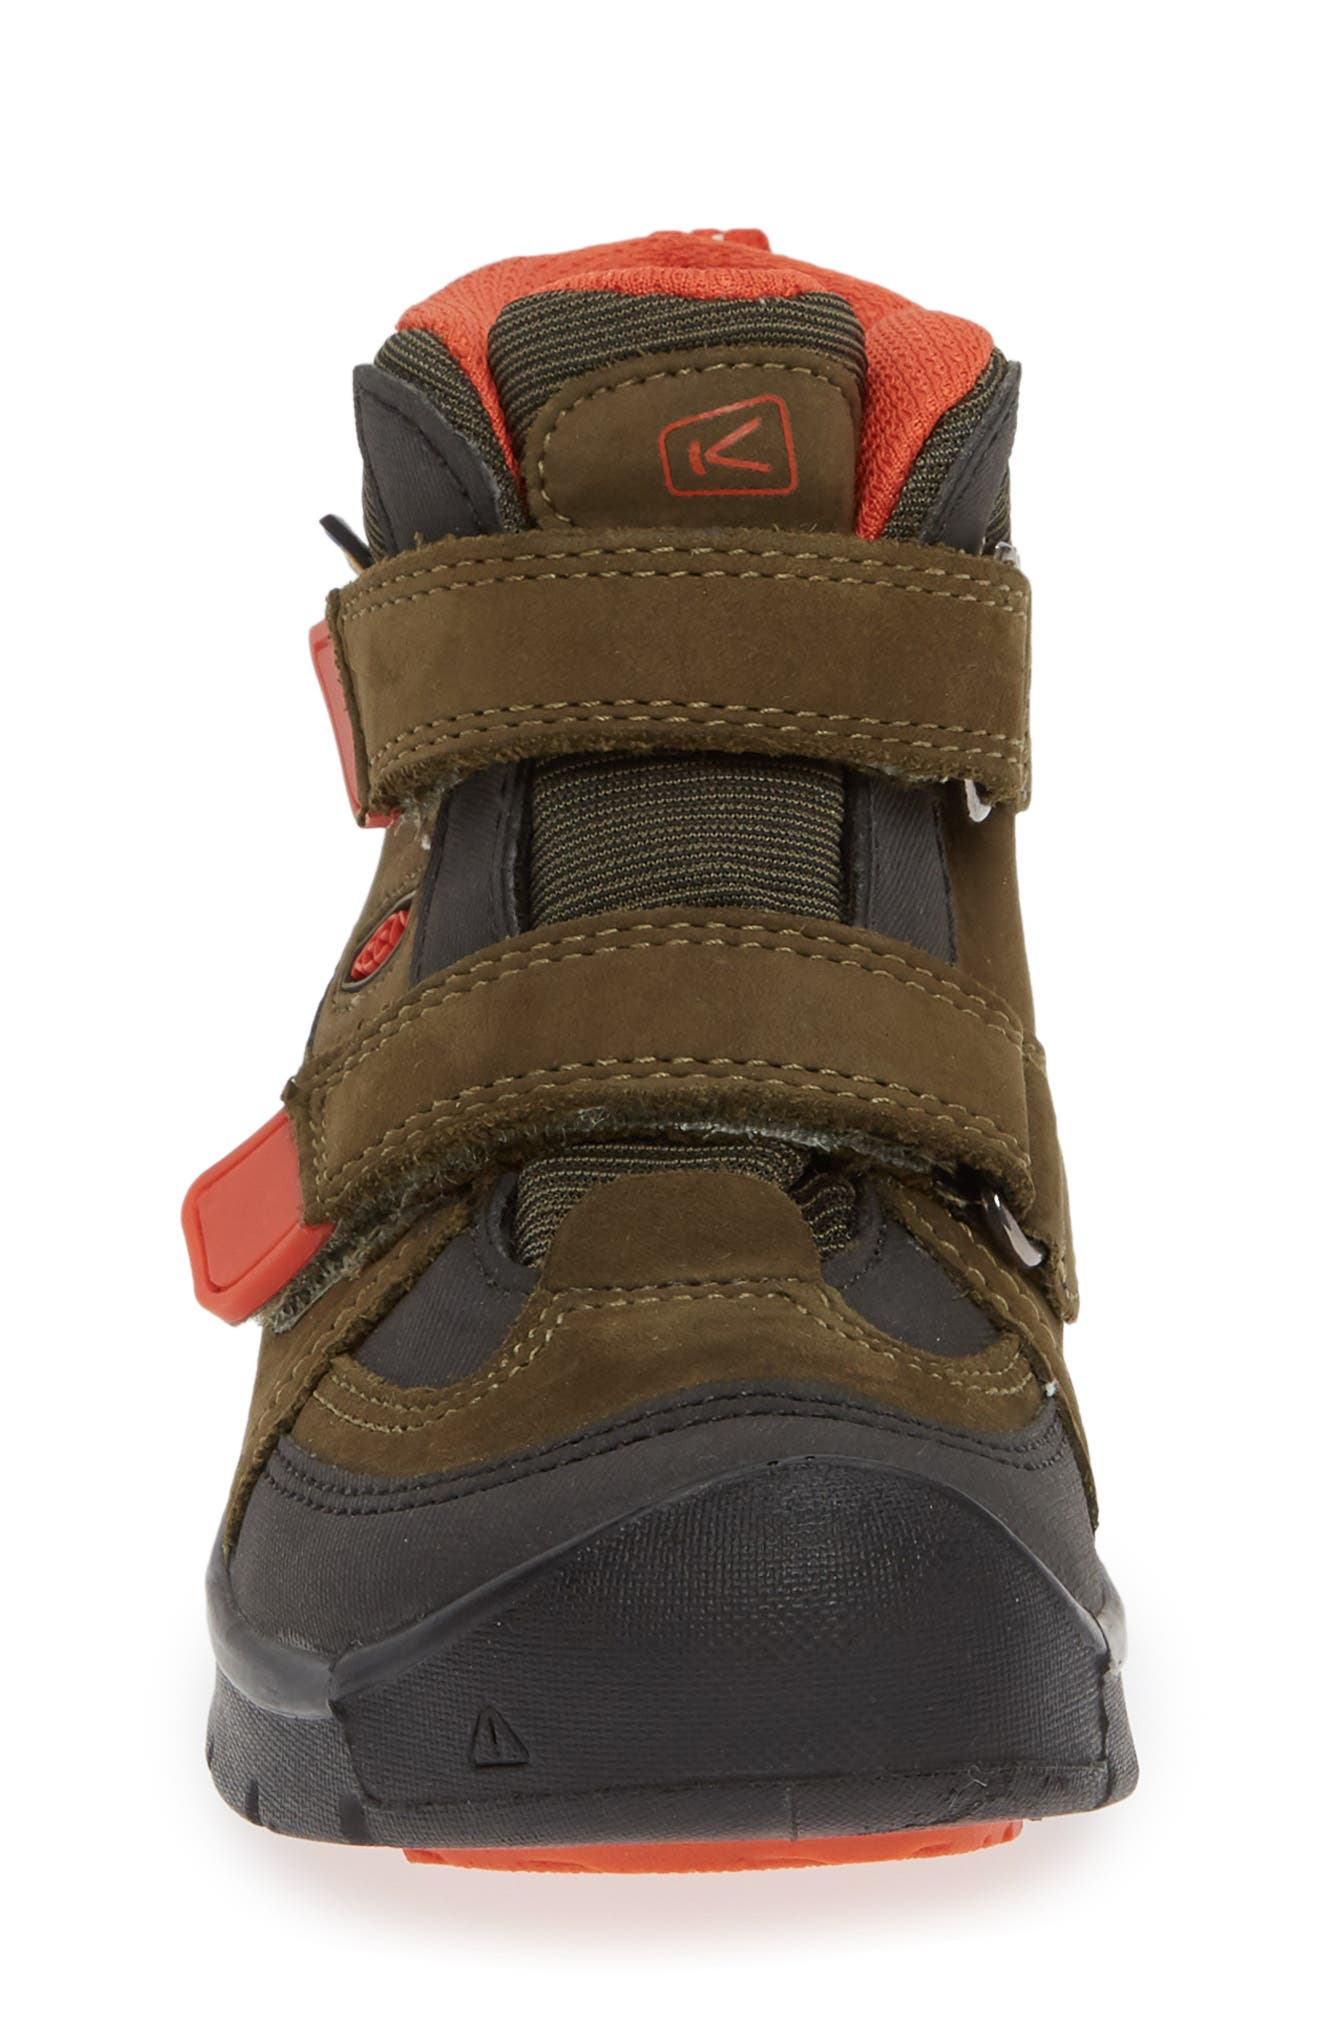 Hikeport Strap Waterproof Mid Boot,                             Alternate thumbnail 14, color,